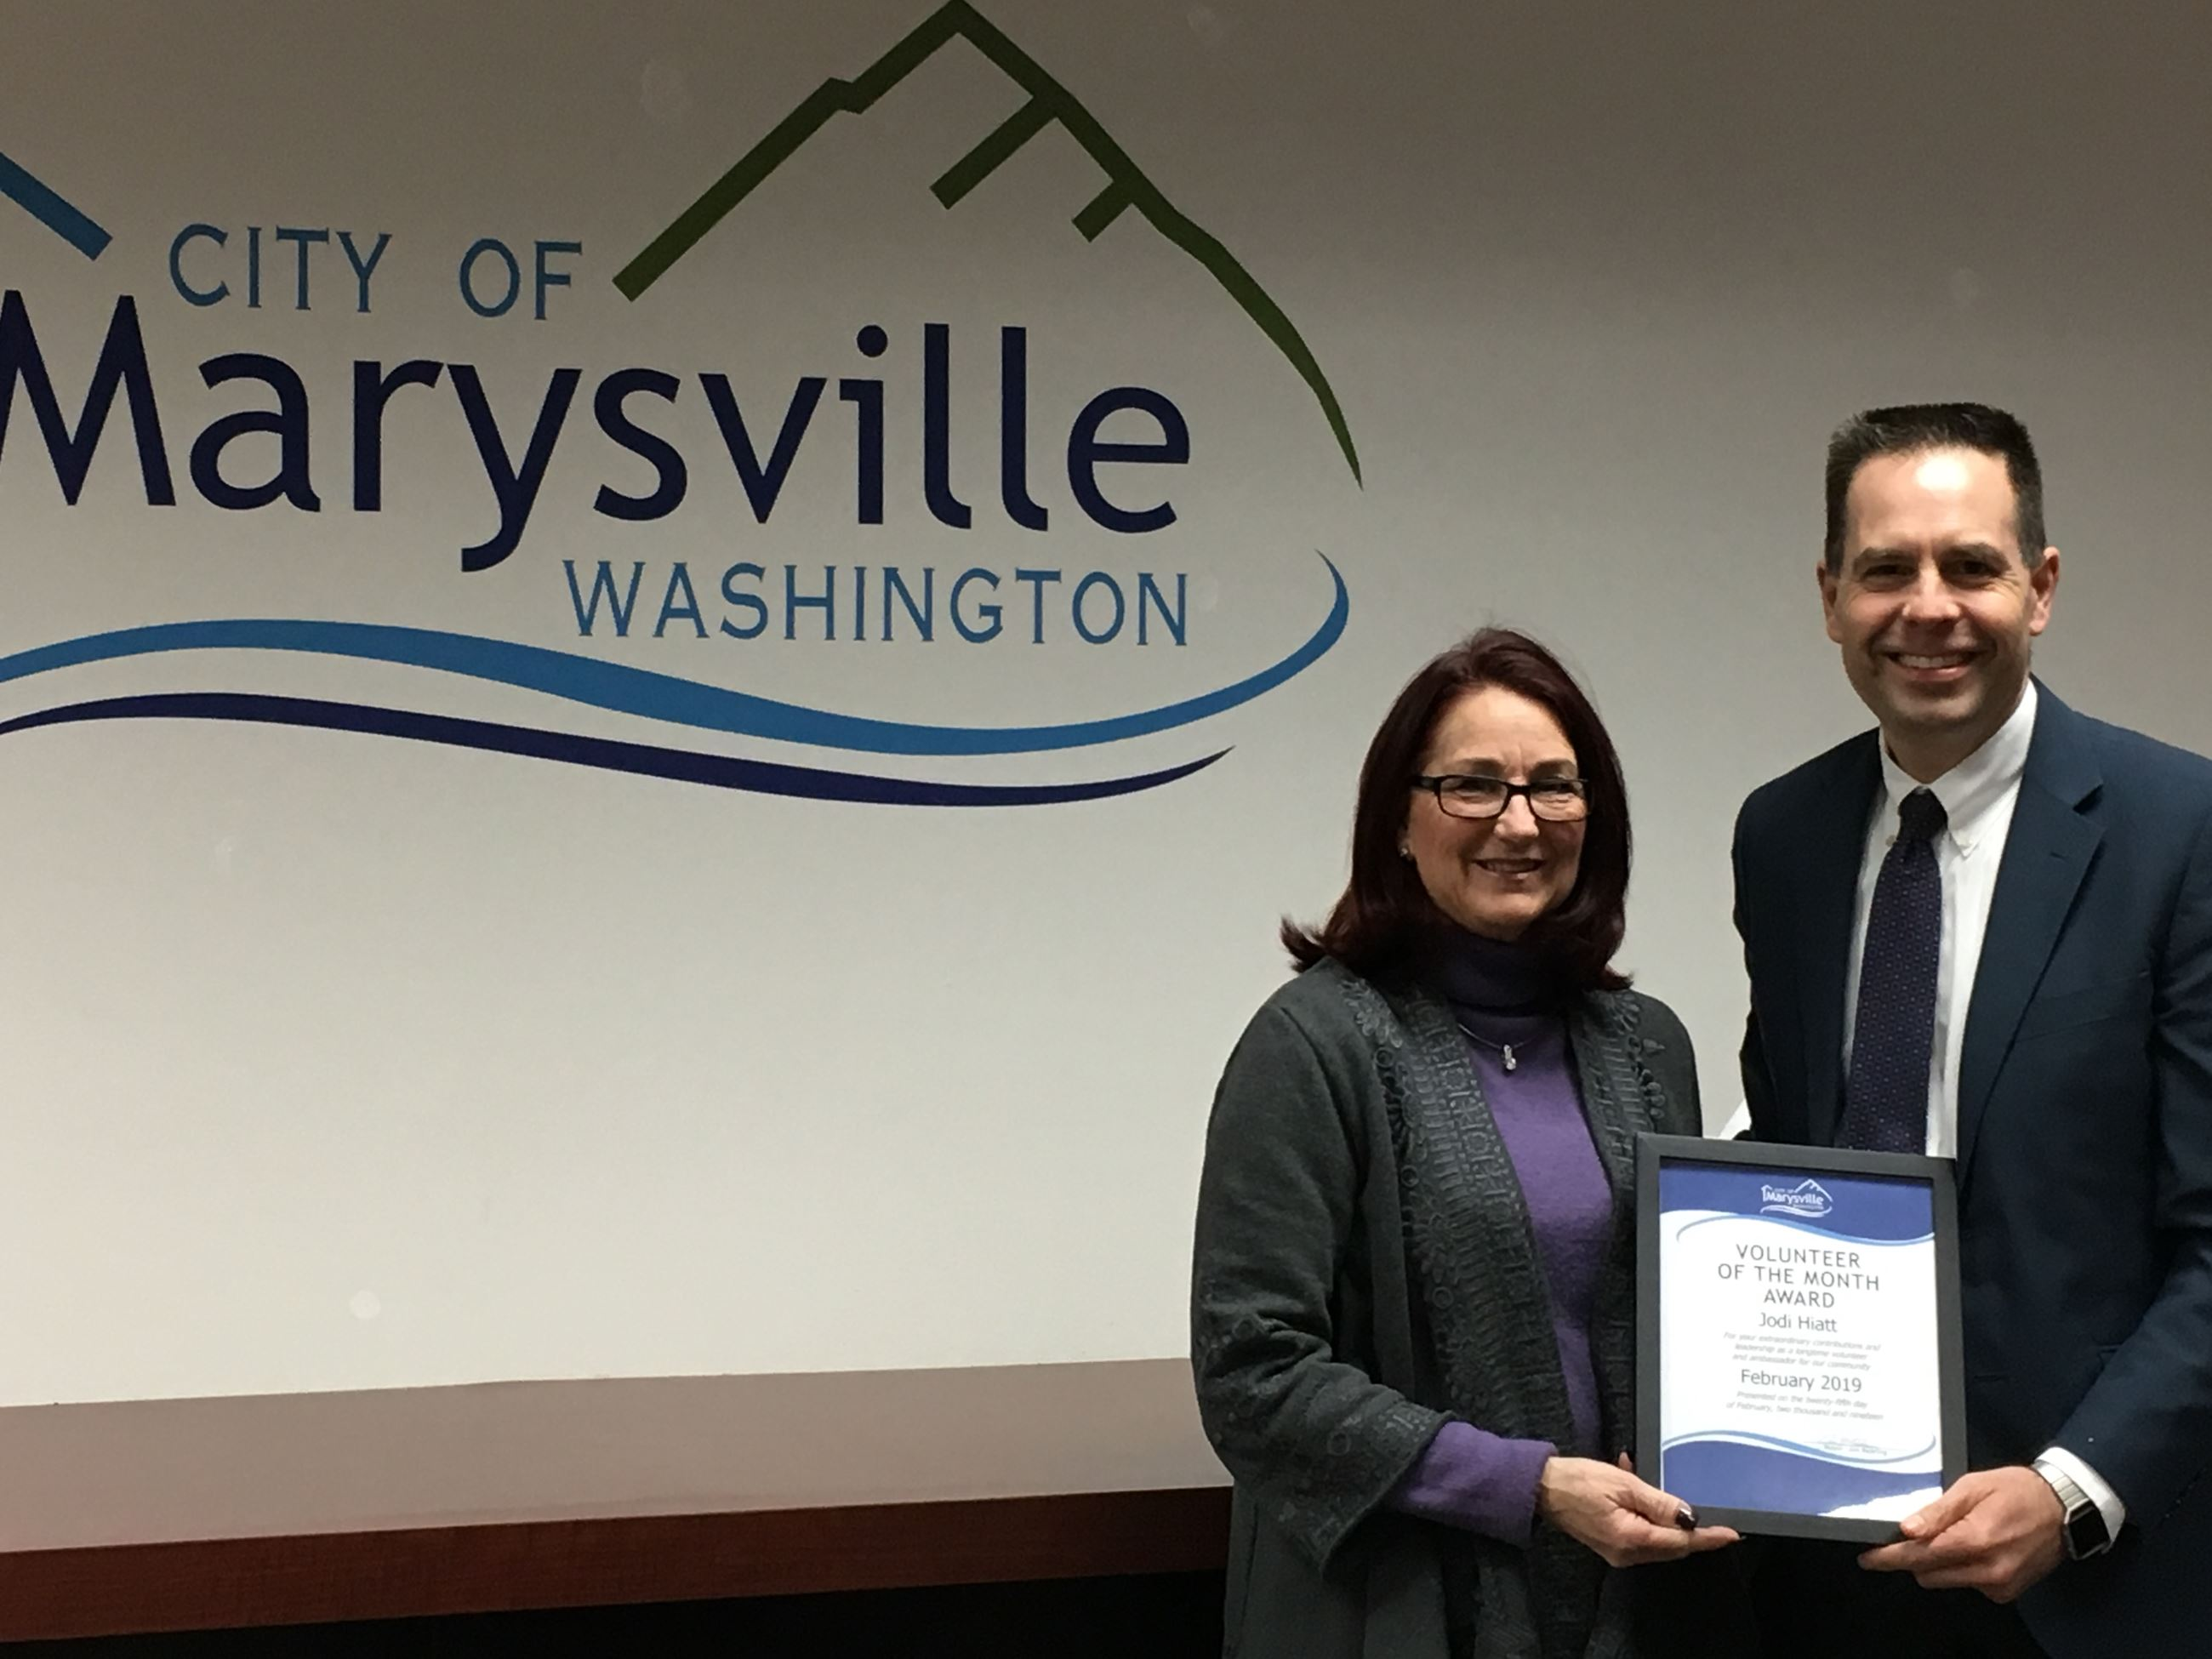 Marysville, WA - Official Website